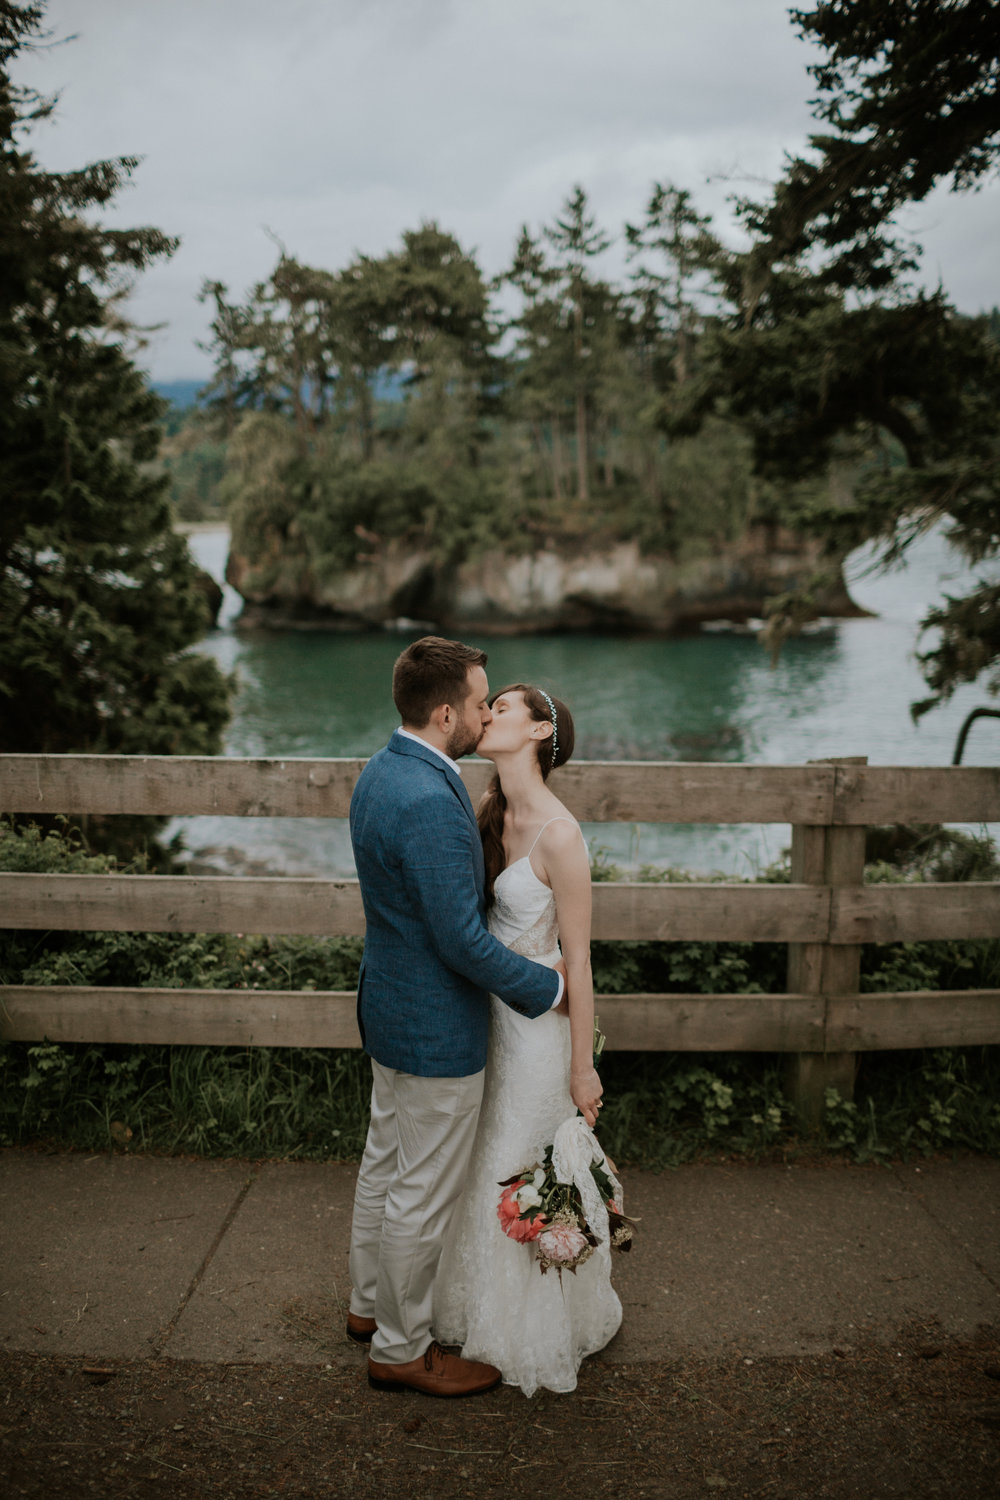 PNW-elopement-wedding-engagement-olympic national park-port angeles-hurricane ridge-lake crescent-kayla dawn photography- photographer-photography-kayladawnphoto-330.jpg